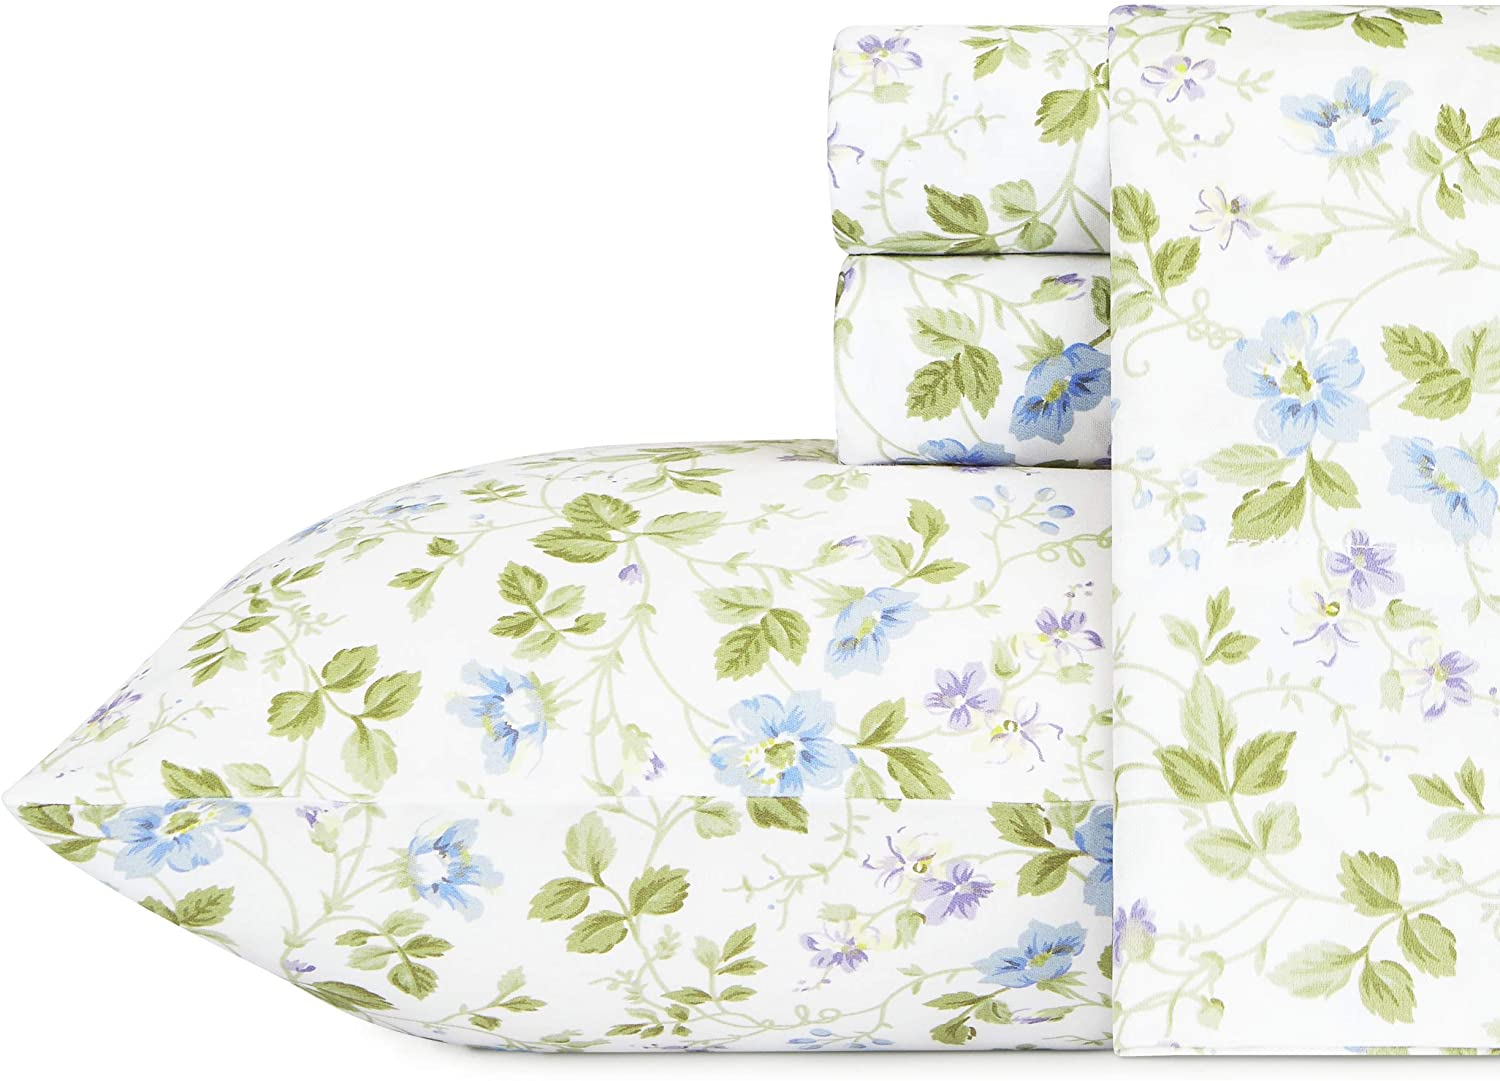 Laura Ashley Home Sateen Collection Bed Sheet Set - 100% Cotton, Silky Smooth & Luminous Sheen, Wrinkle-Resistant Bedding, Queen, Spring Bloom Wildflower